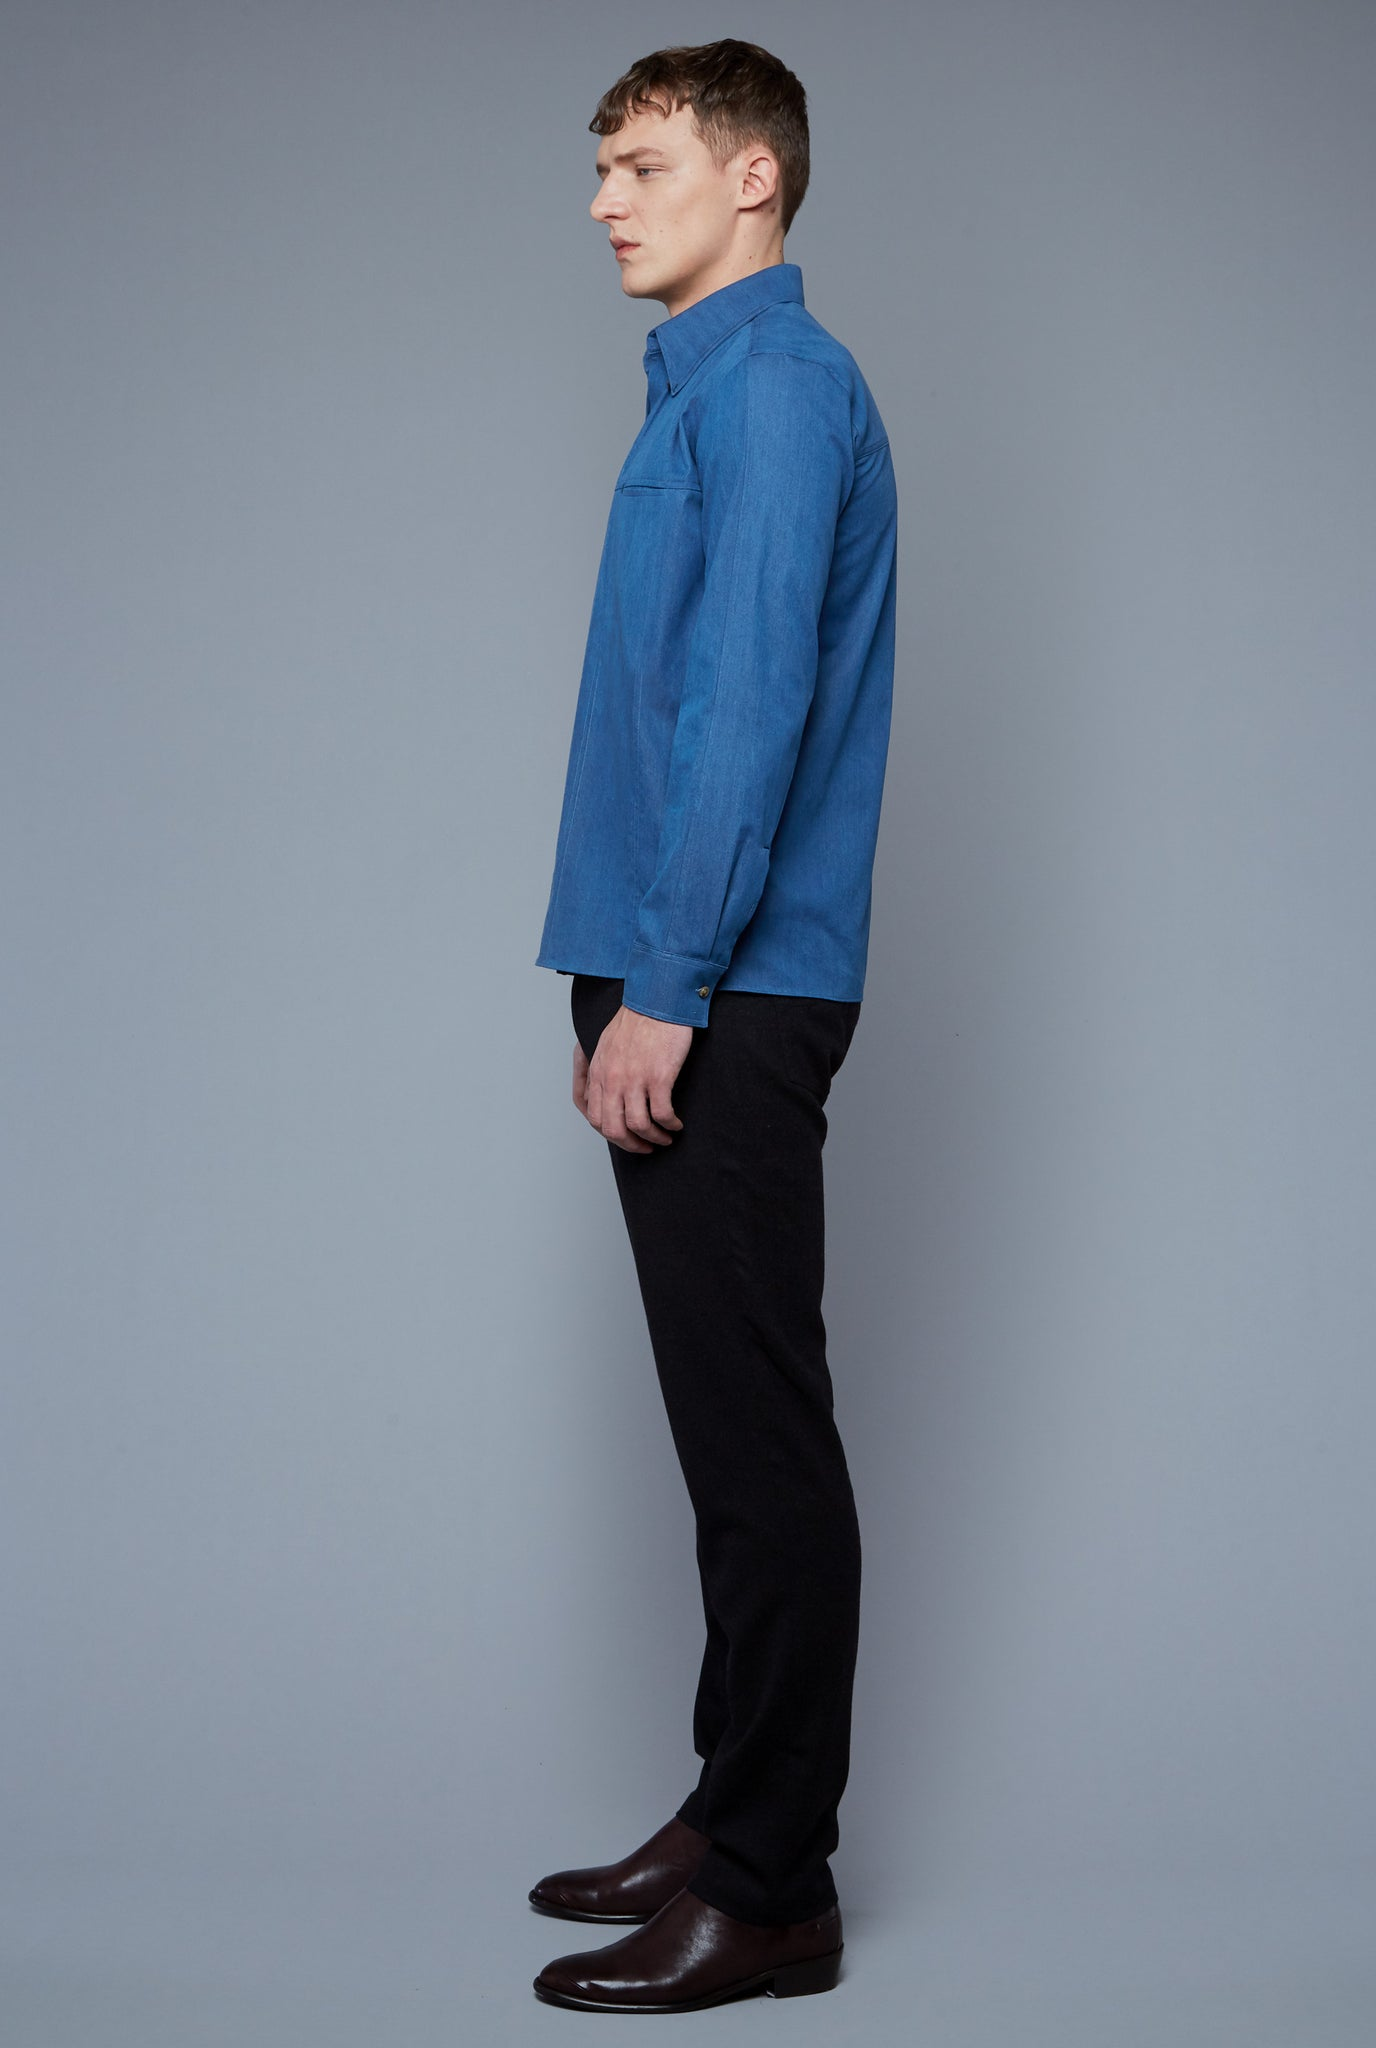 Side View: Model Milos Drago wearing Kojima Denim Shirt